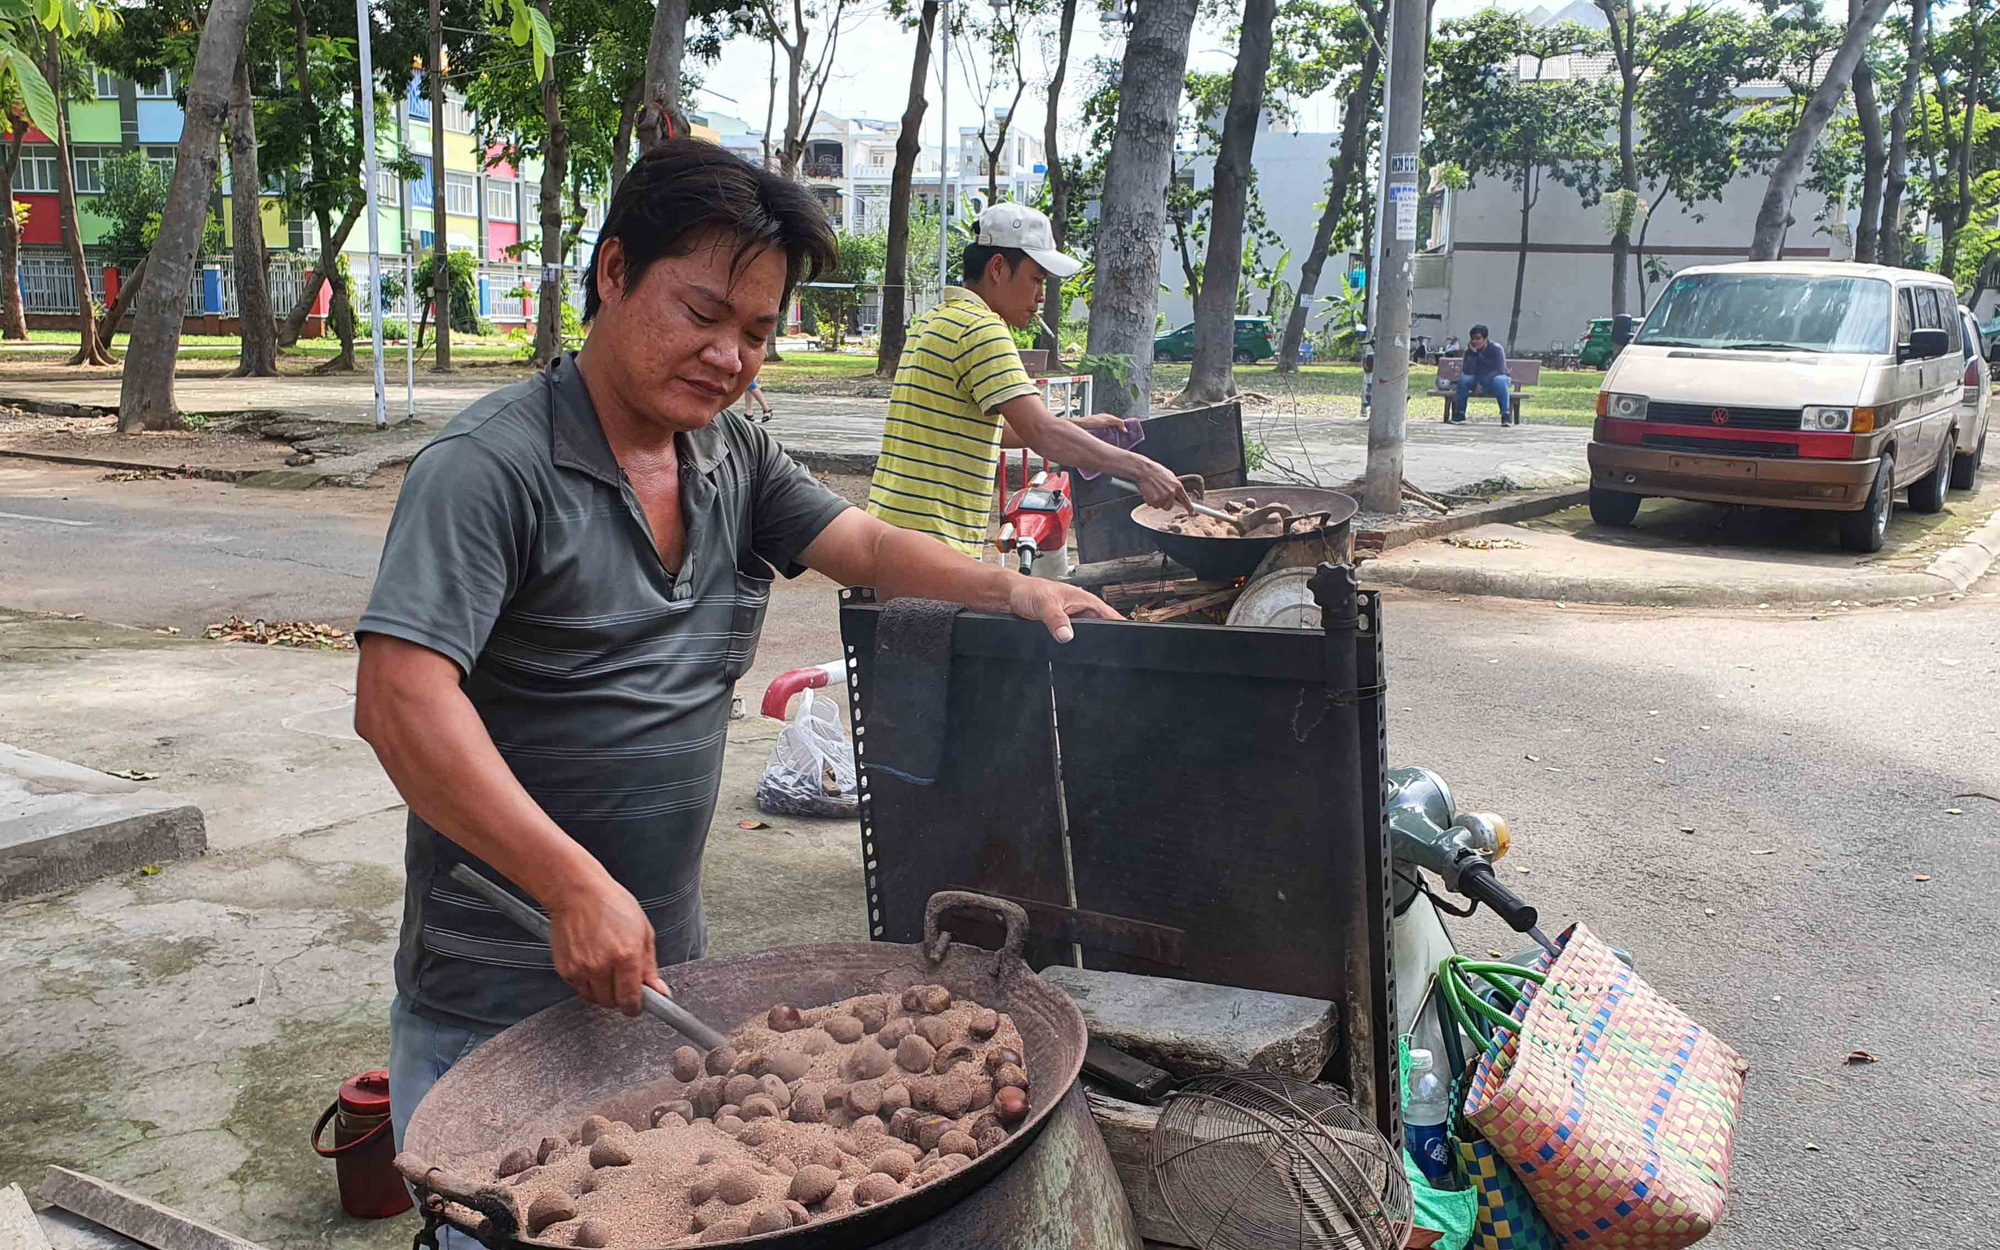 Tran Van Loi roasts hazelnuts at his roadside stall in Ho Chi Minh City, Vietnam. Photo: Manh Dung / Tuoi Tre